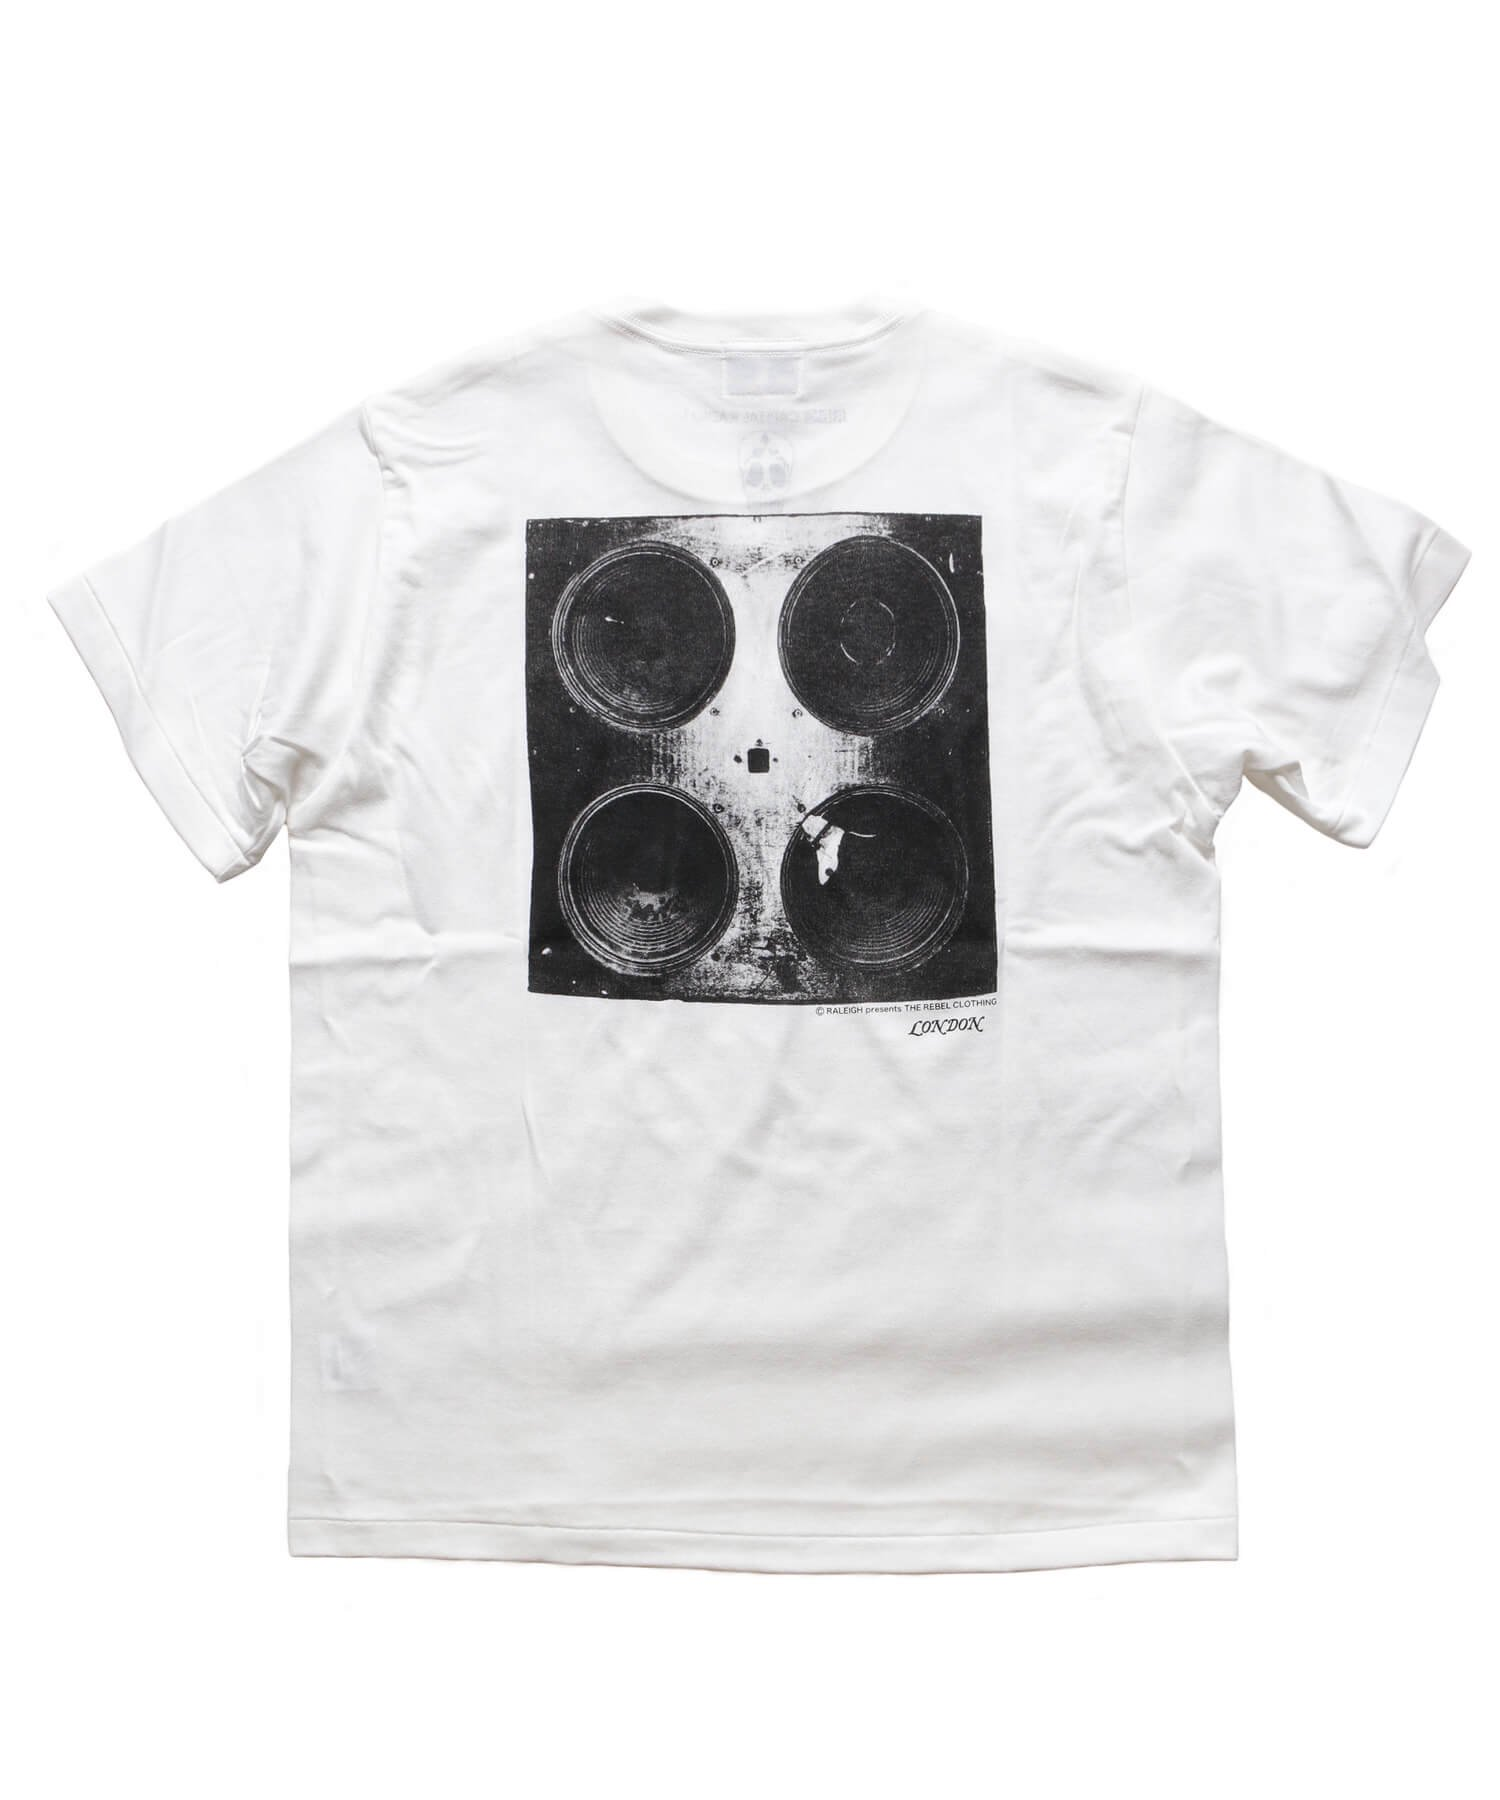 """RALEIGH / ラリー(RED MOTEL / レッドモーテル)   RALEIGH SOUND SYSTEM """"DUB OUR FUTURE"""" D.I.Y. T-SHIRTS (WH) 商品画像2"""